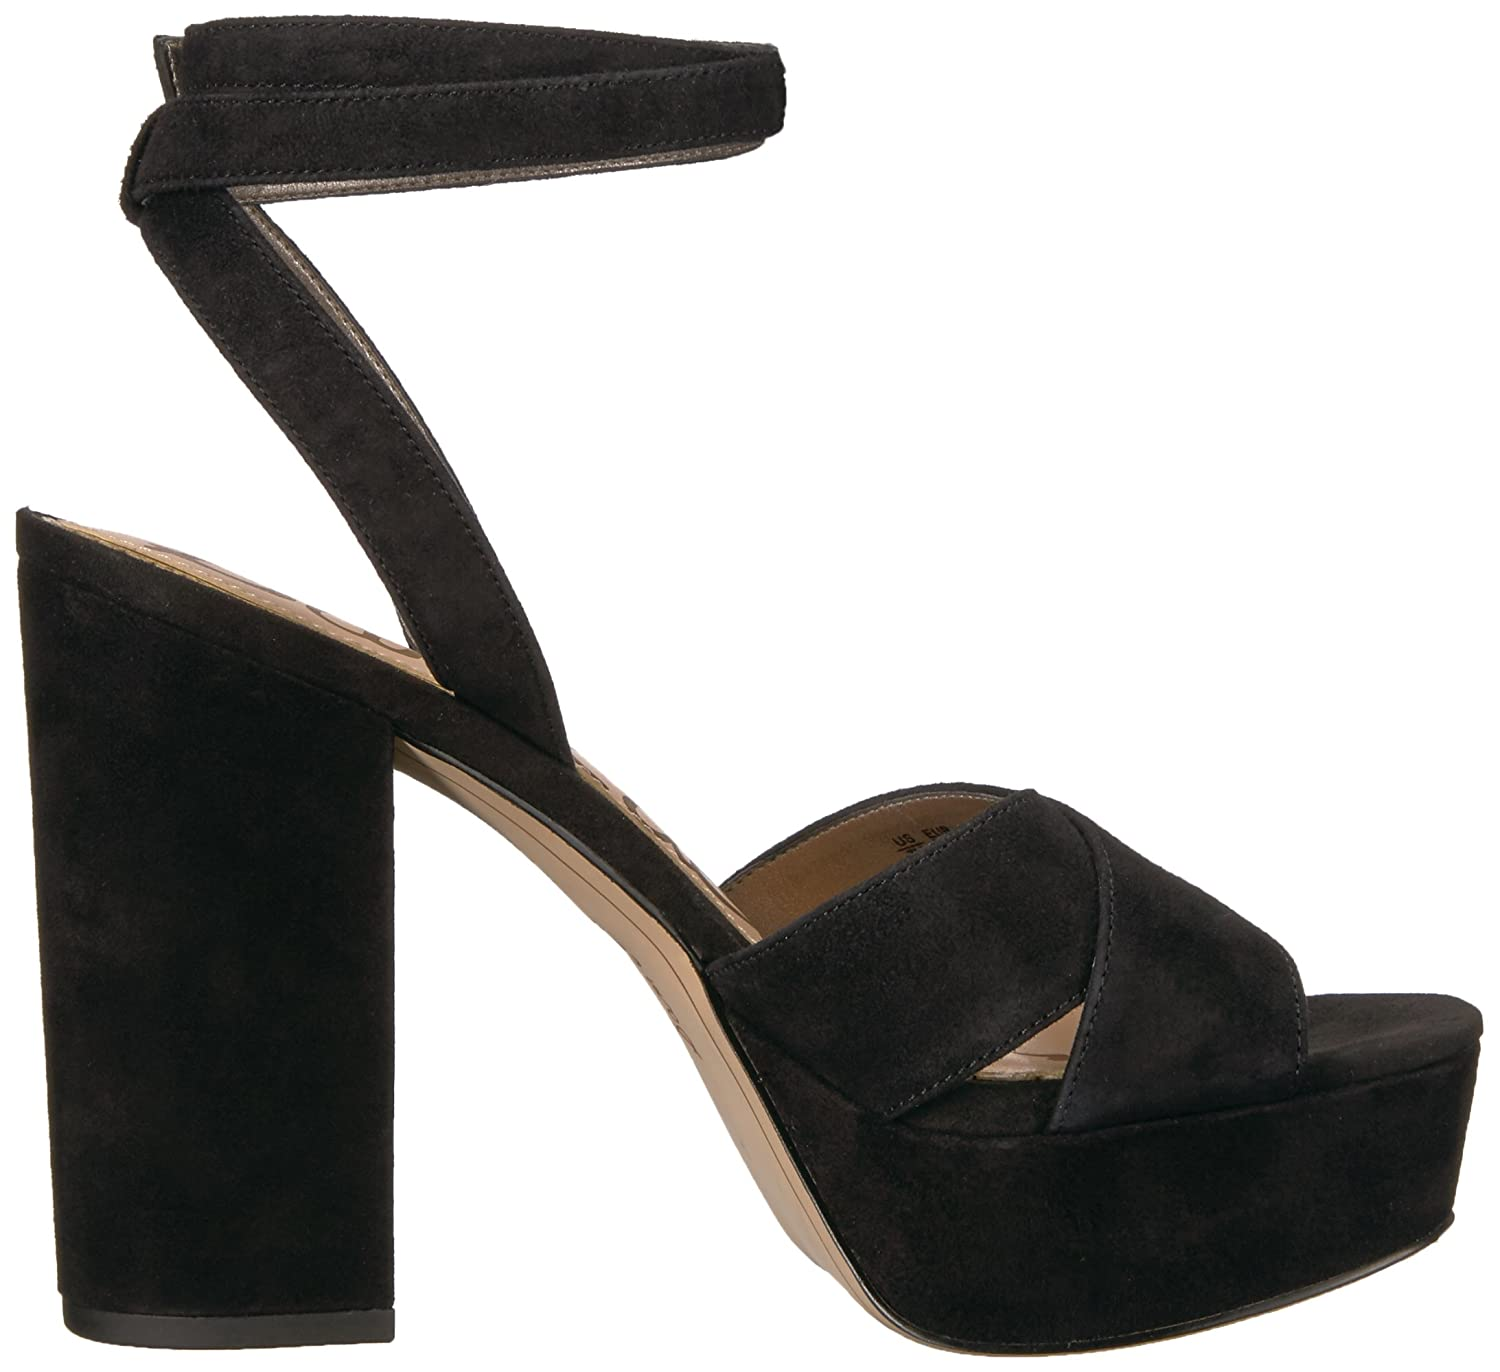 Sam Edelman Women's Mara Heeled Sandal 9.5 B01NCL8EDE 9.5 Sandal Medium US|Black Suede d94561